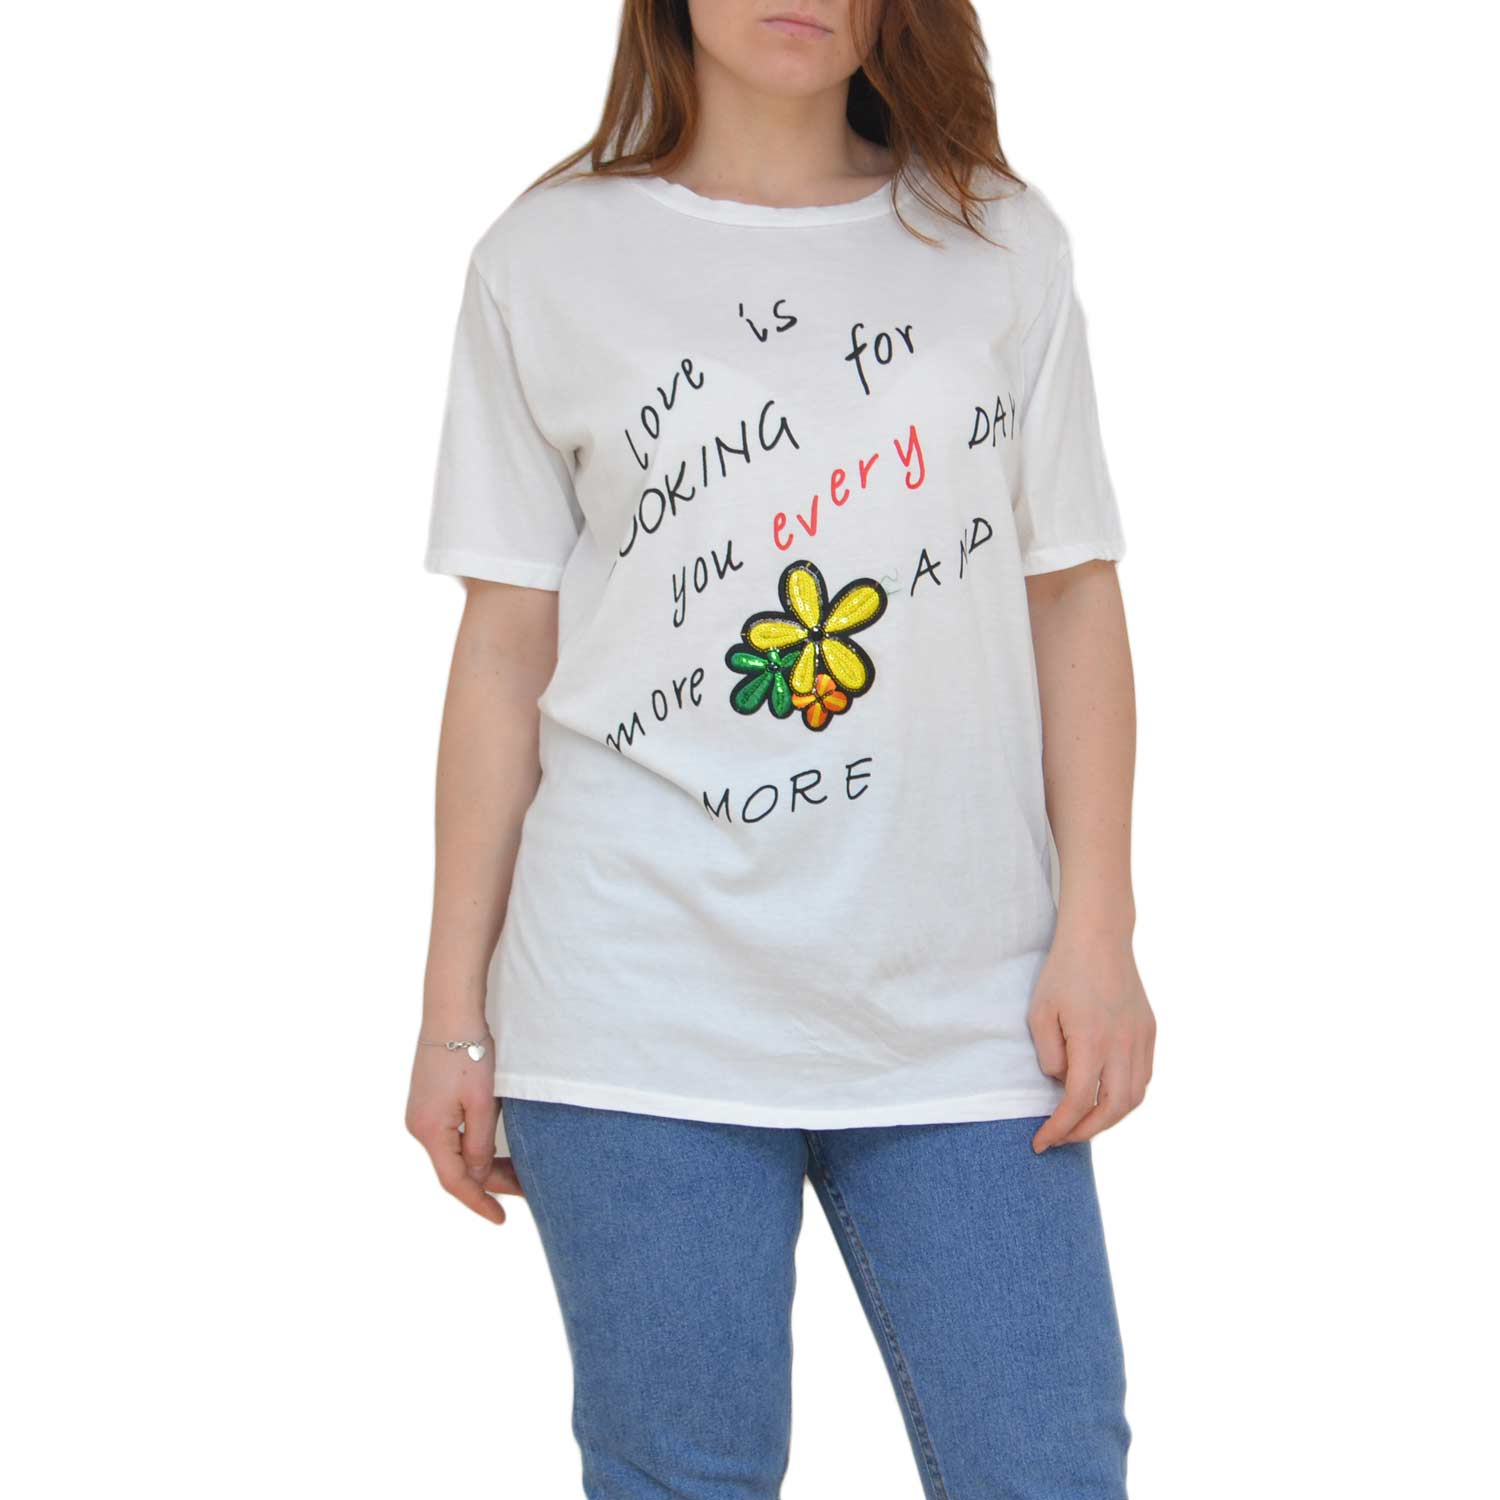 T-shirt donna bianca con scritte al petto basic moda estate 2018